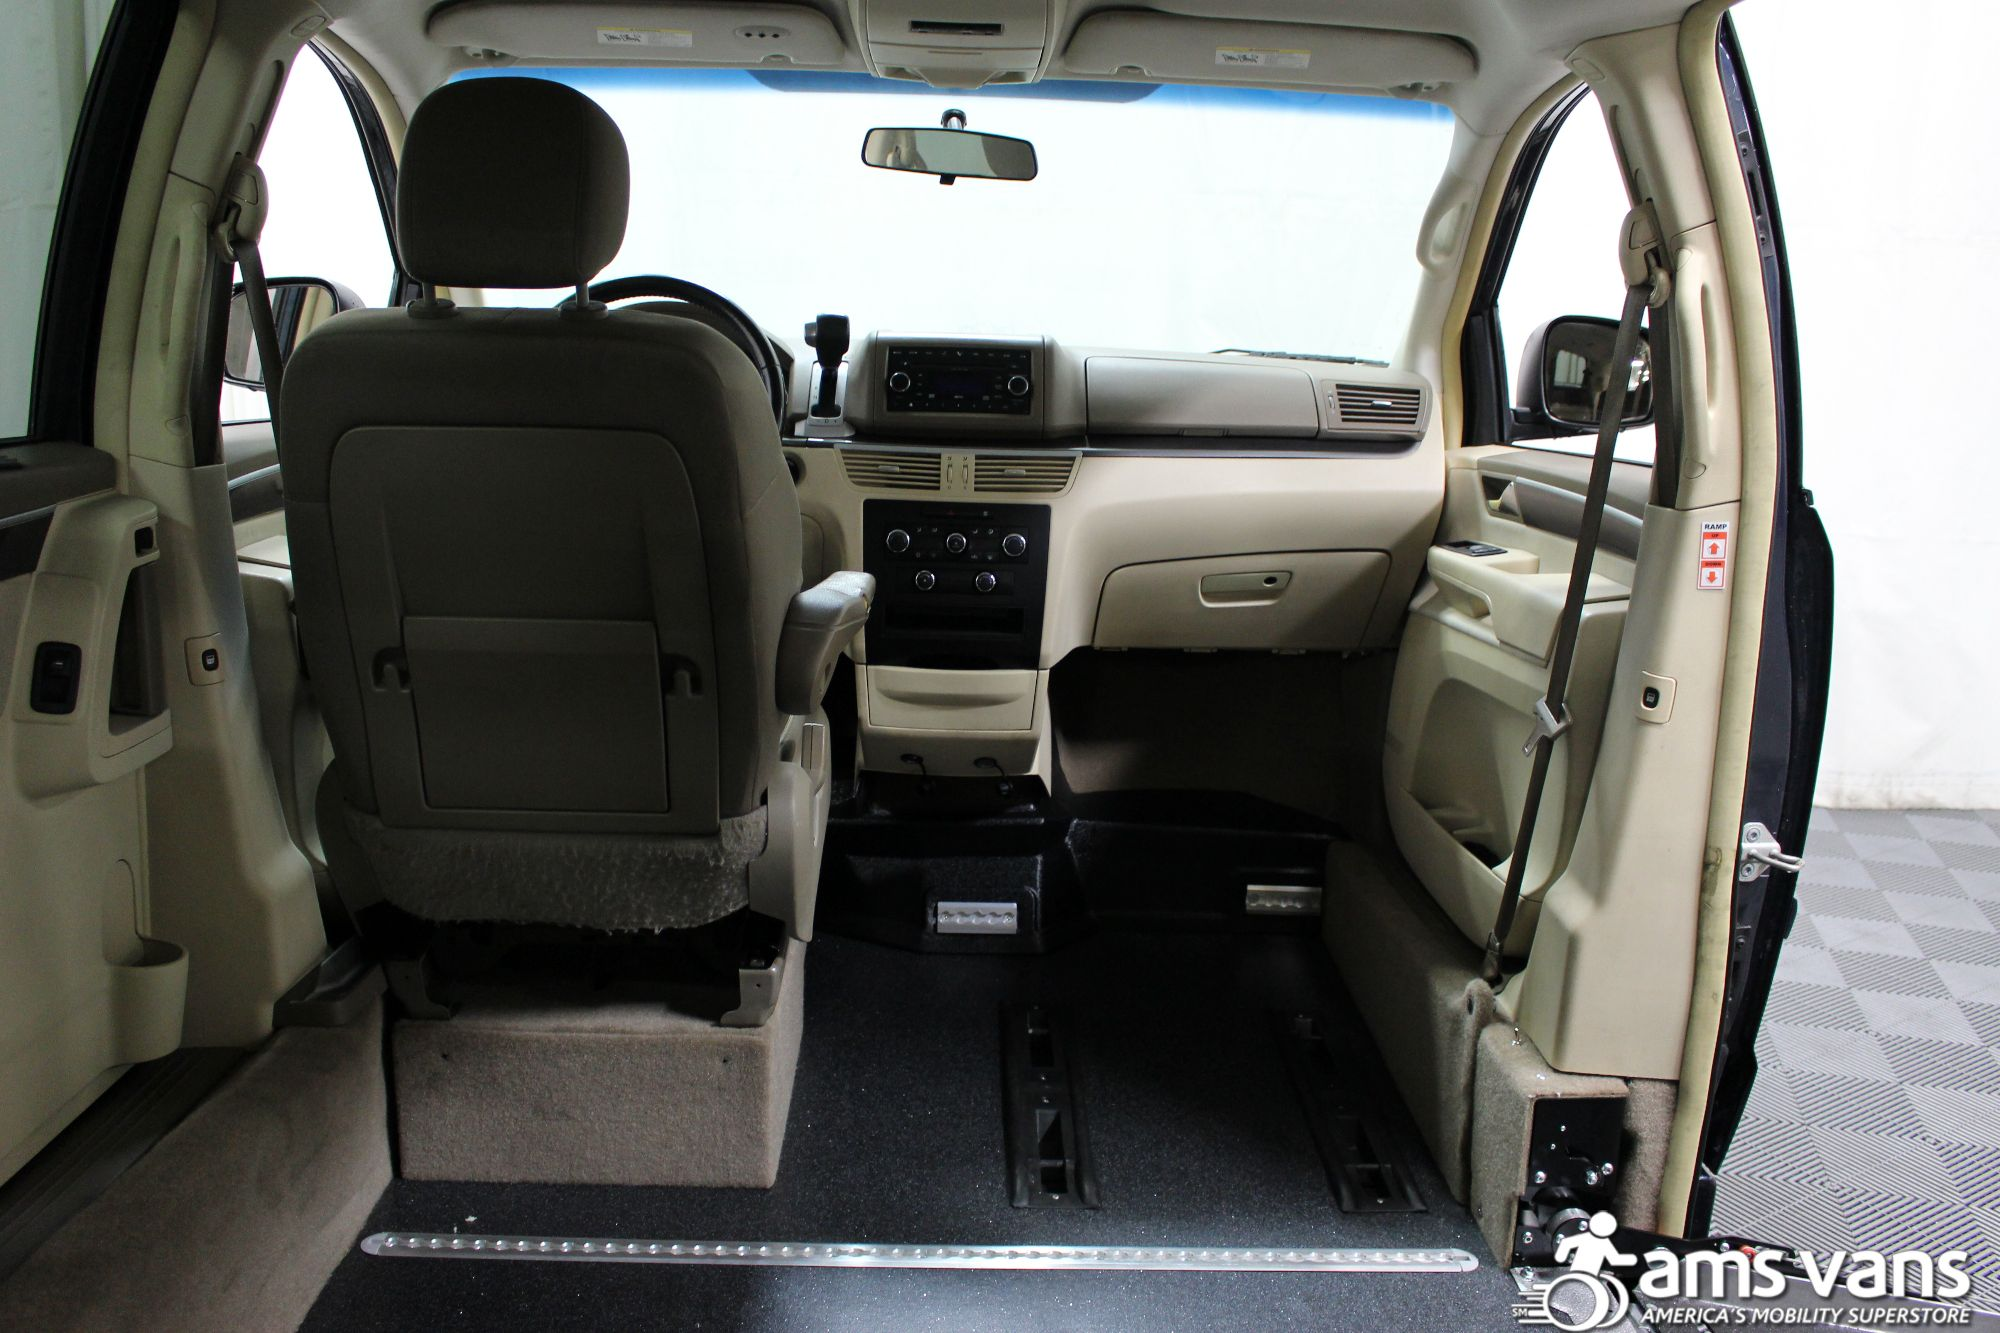 2009 Volkswagen Routan SE Wheelchair Van For Sale #7